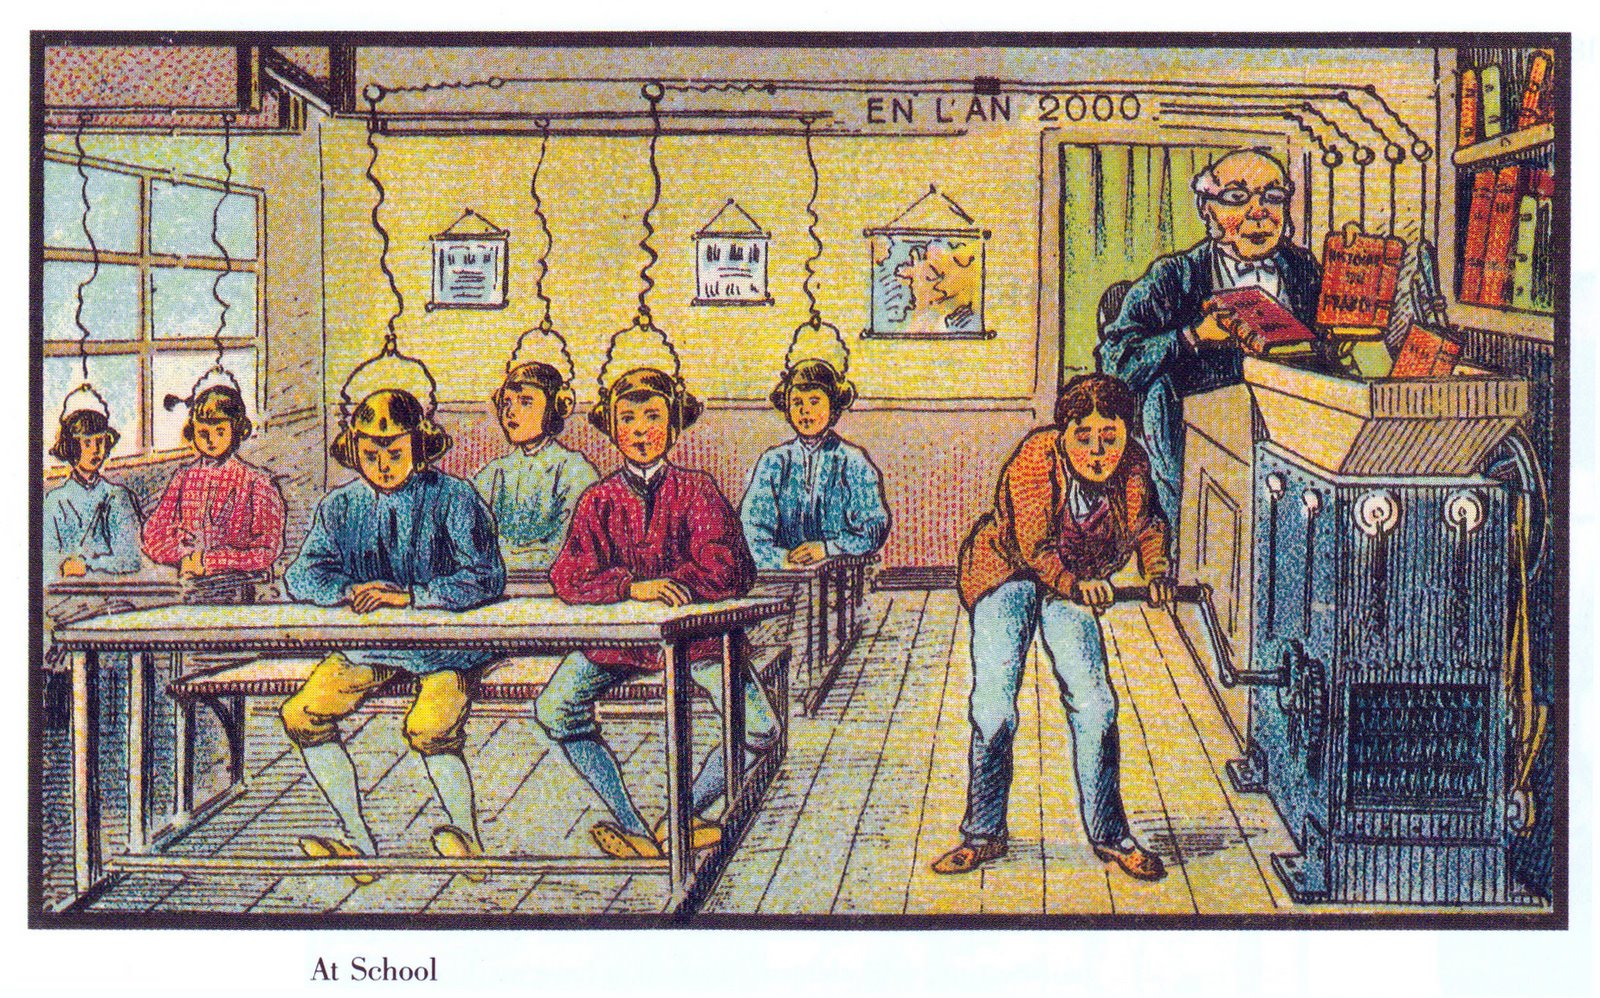 Illustration of 19th century classroom - imagine learning in the future